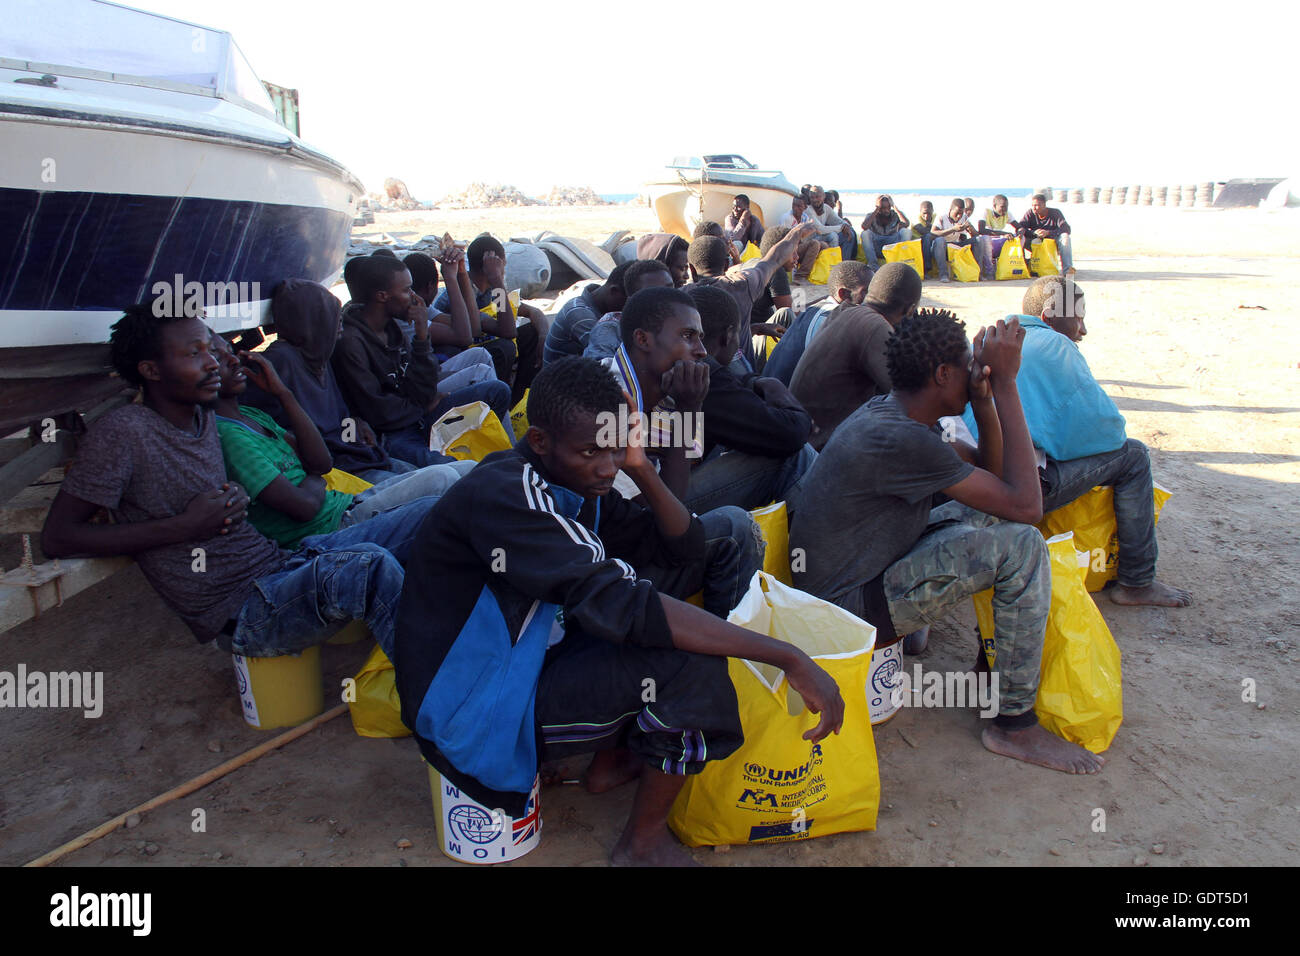 Tripoli. 21st July, 2016. Illegal migrants sit on the dock of Tripoli port in Tripoli, Libya on July 21, 2016. Some - Stock Image